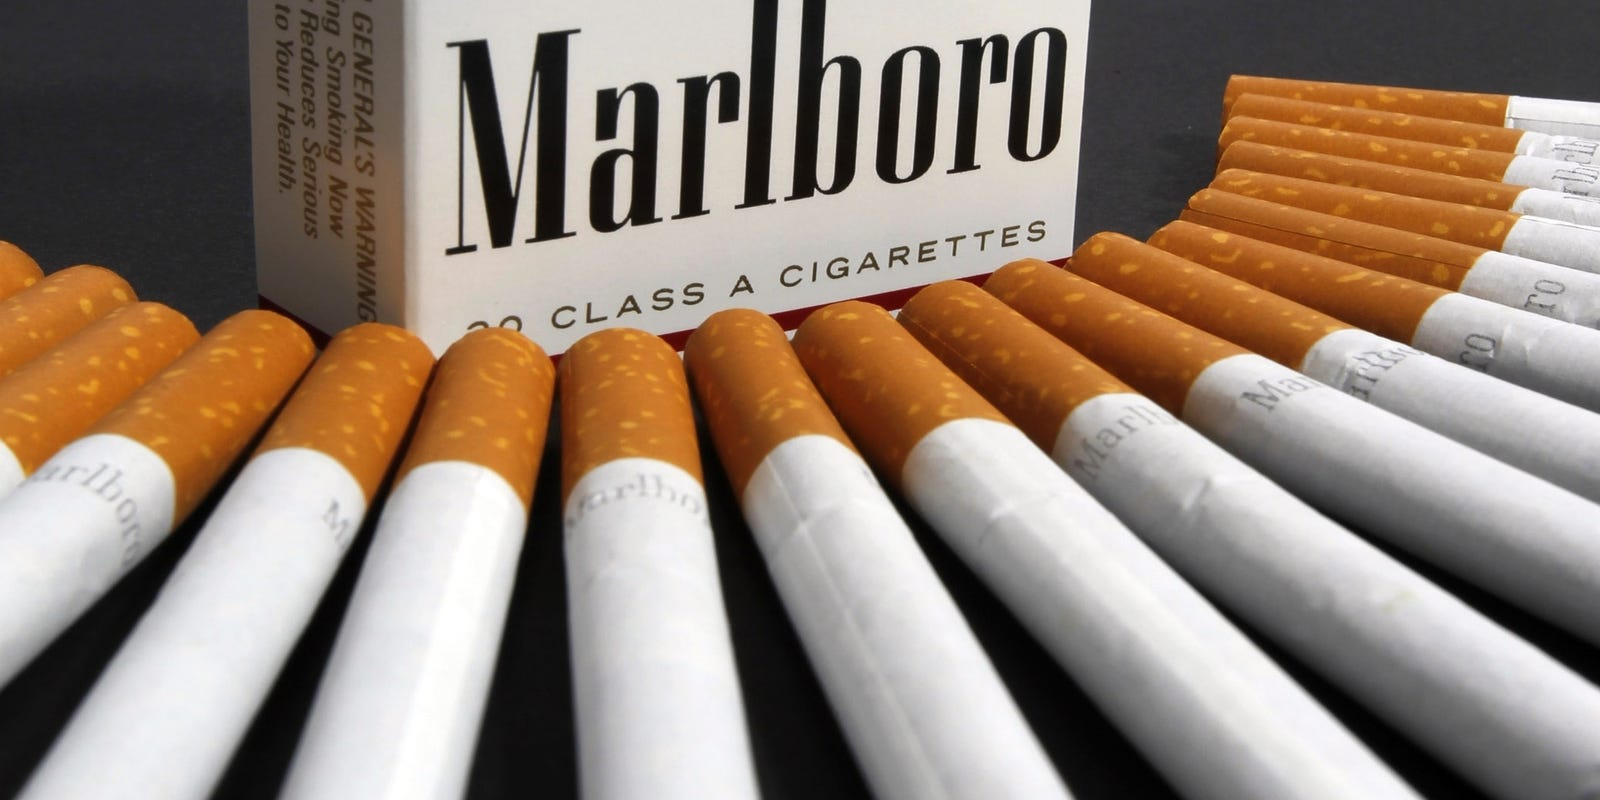 Philip Morris says its New Year's resolution is to stop smoking